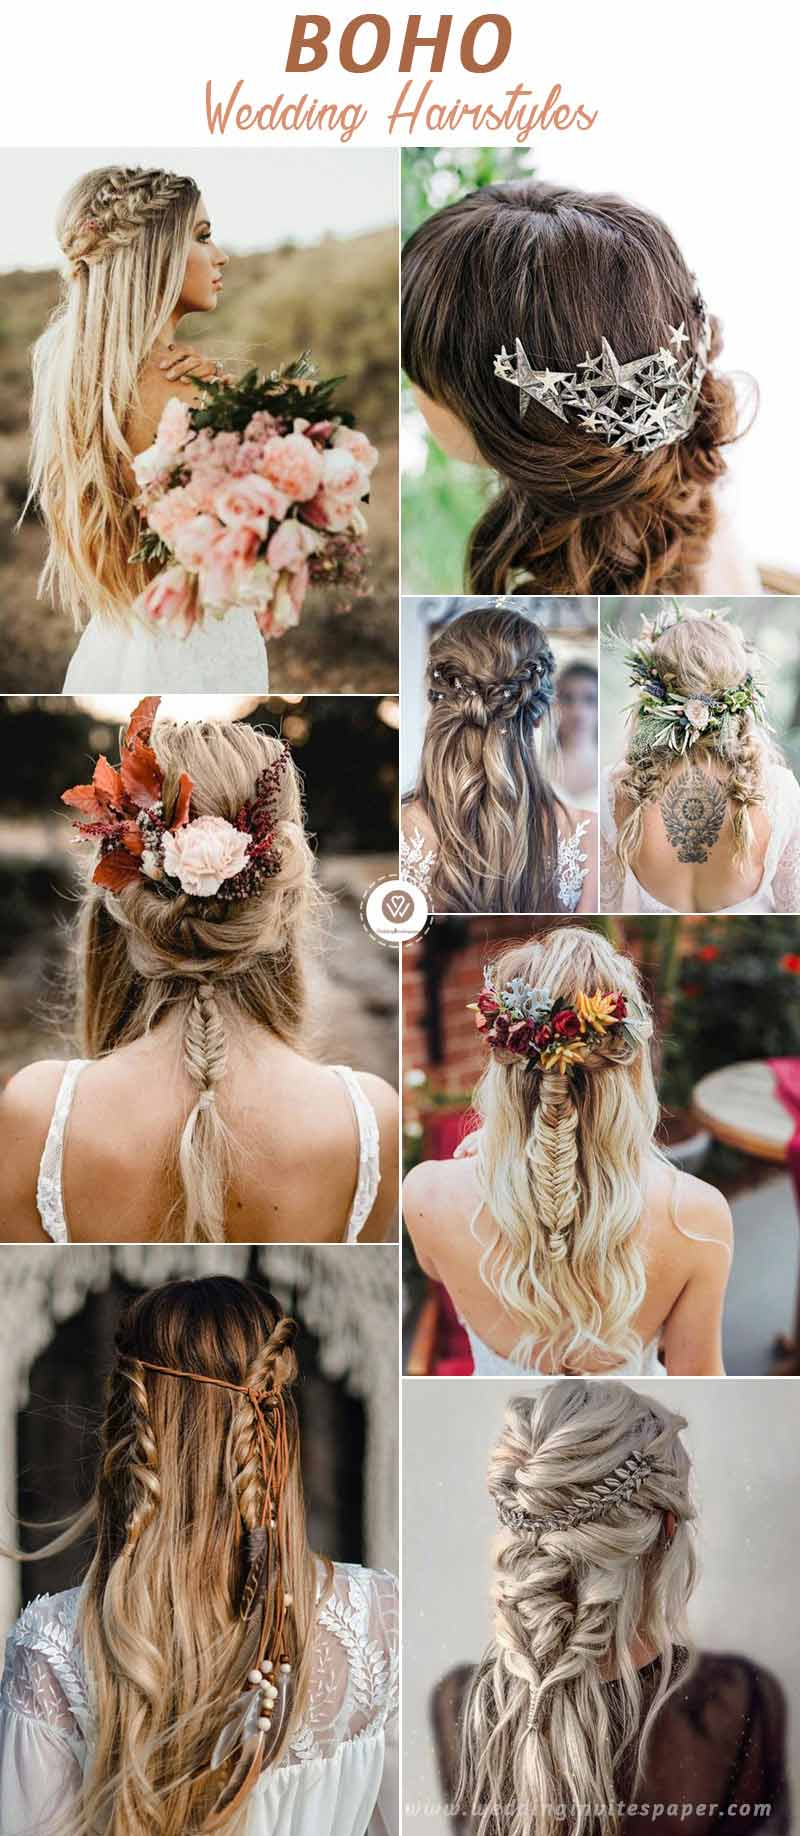 BOHO-Wedding-Hairstyles.jpg